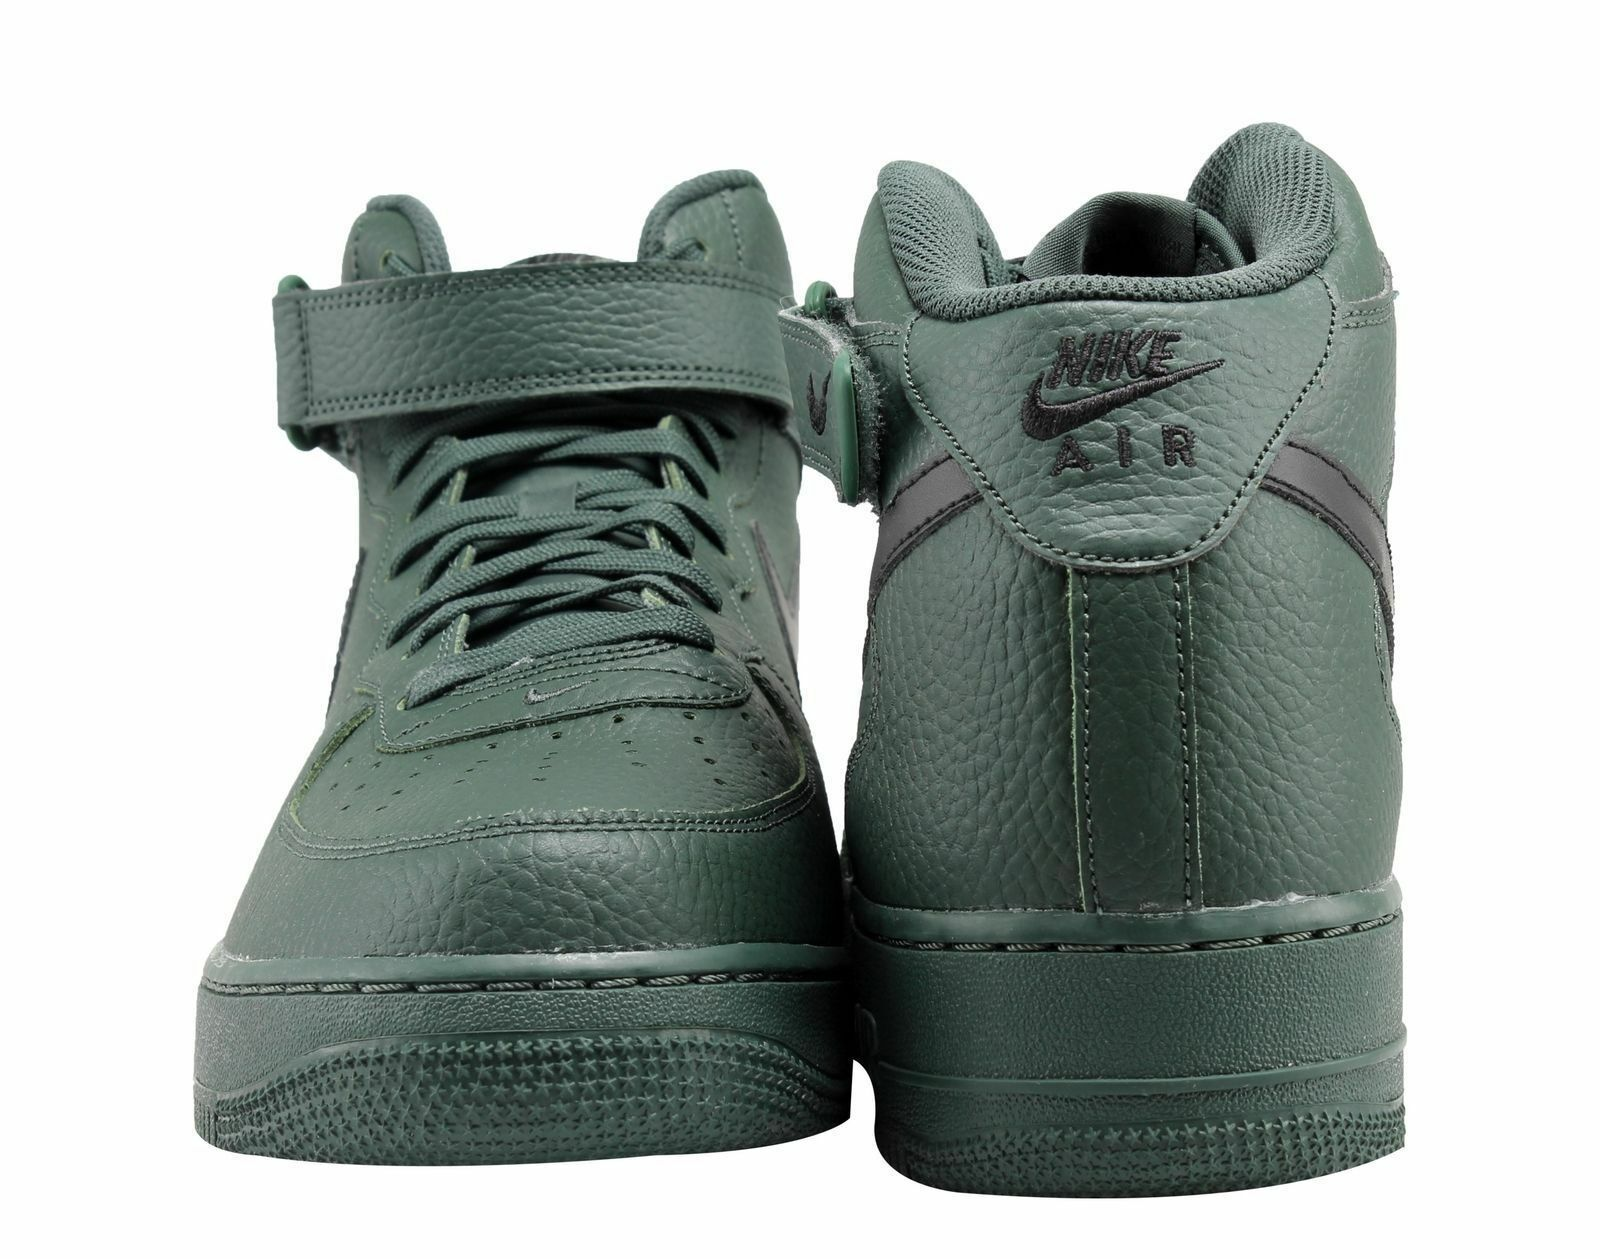 NIKE AIR FORCE 1 SHOES MID '07 SNEAKERS MEN SHOES 1 GROVE GREEN 315123-303 SIZE 8.5 NEW a7e411